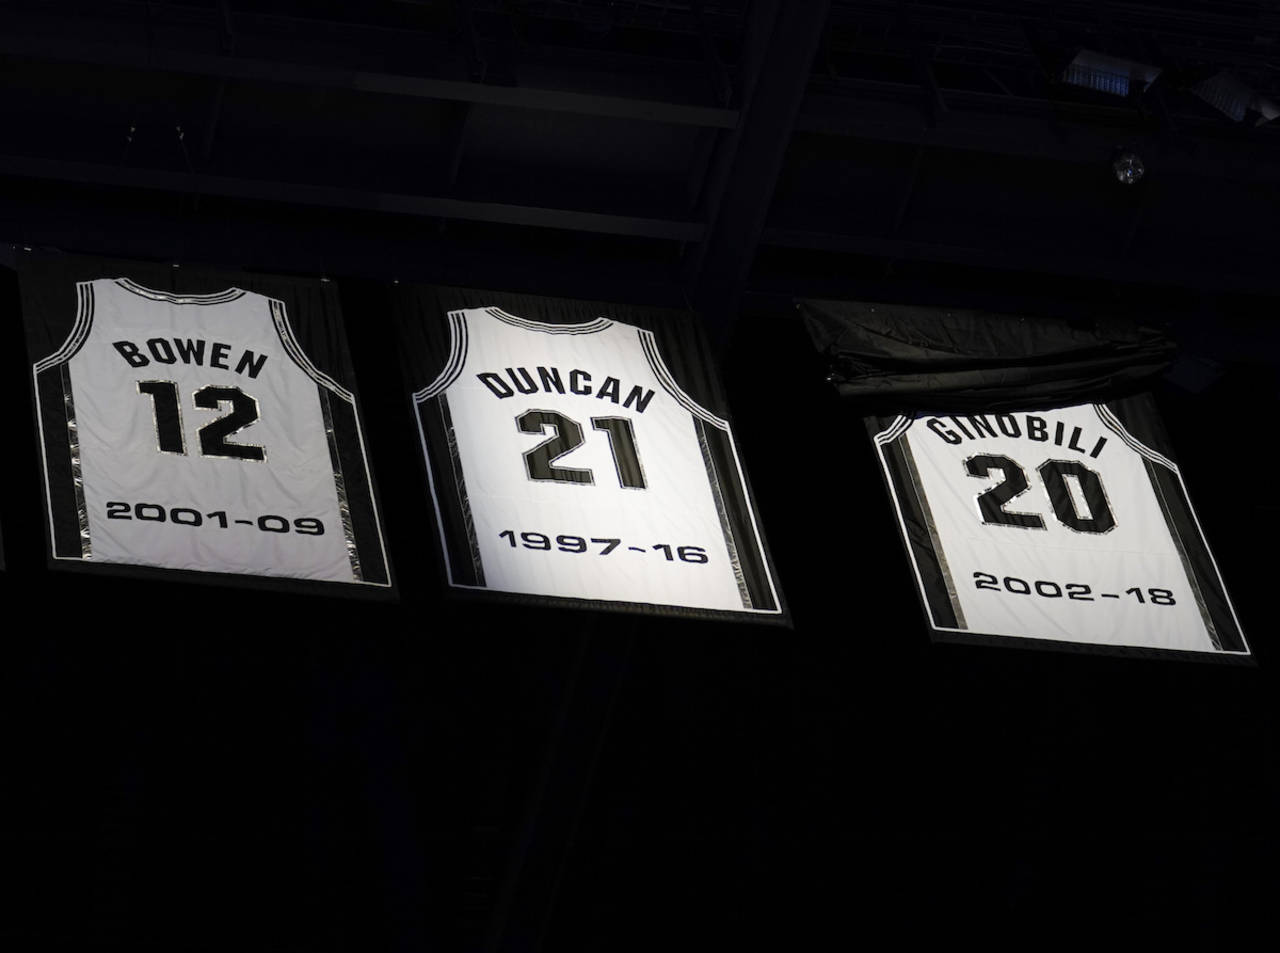 b800829620d Spurs retire Ginobili's jersey during emotional ceremony...